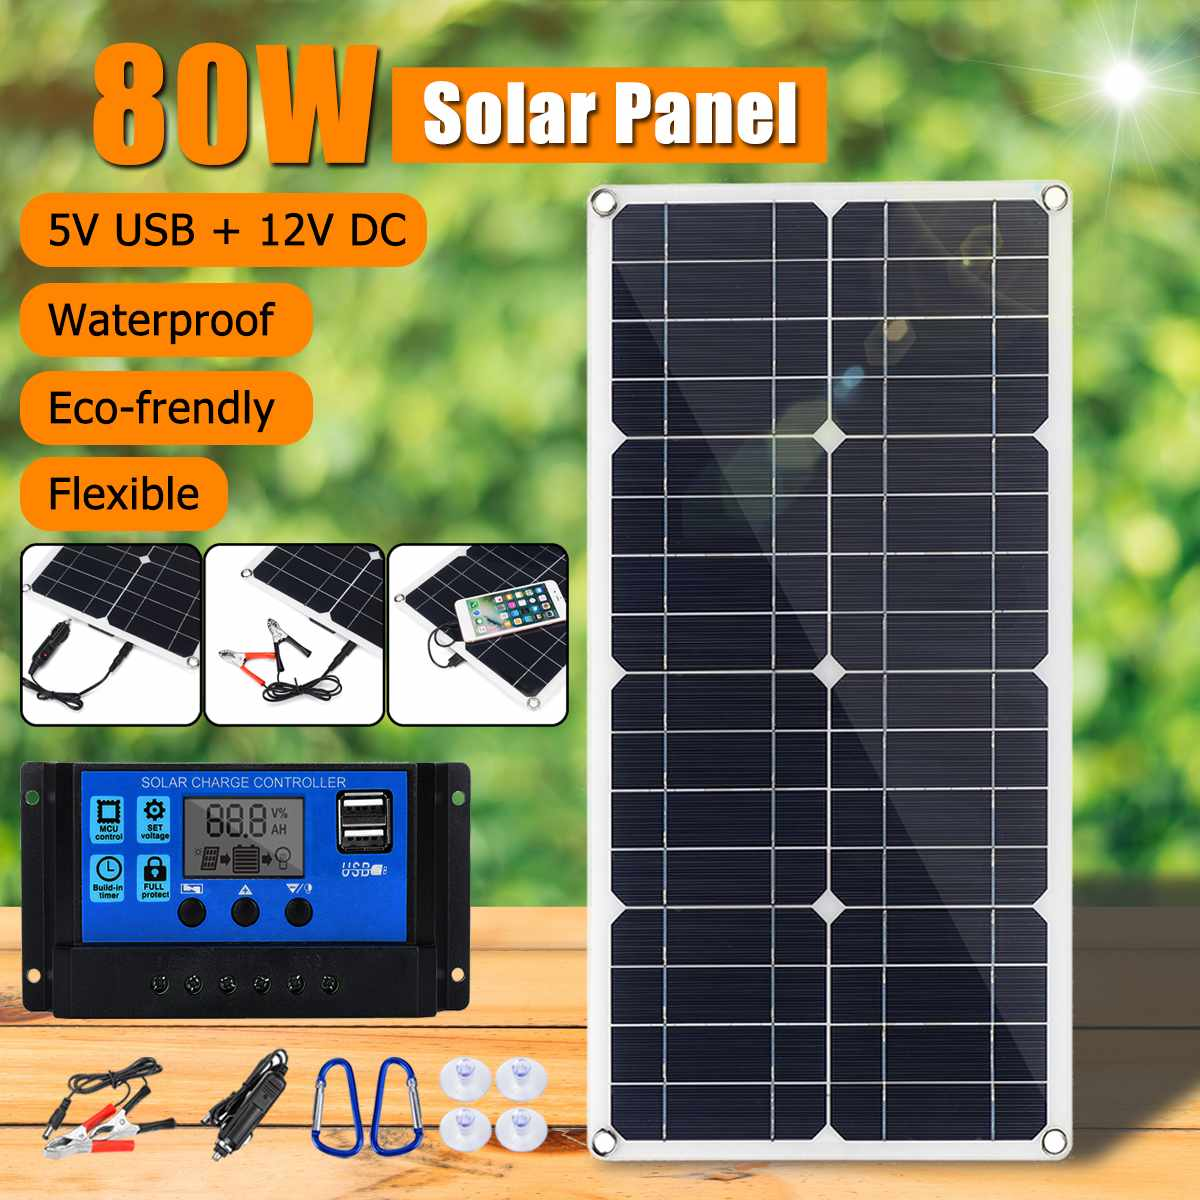 New 80W 18V Monocrystaline EVA+PET Solar Panel Dual 12V/5V DC USB Charger with 10A 12V/24V PWM Controller Kit For Car RV Boat|Solar Cells| |  - title=